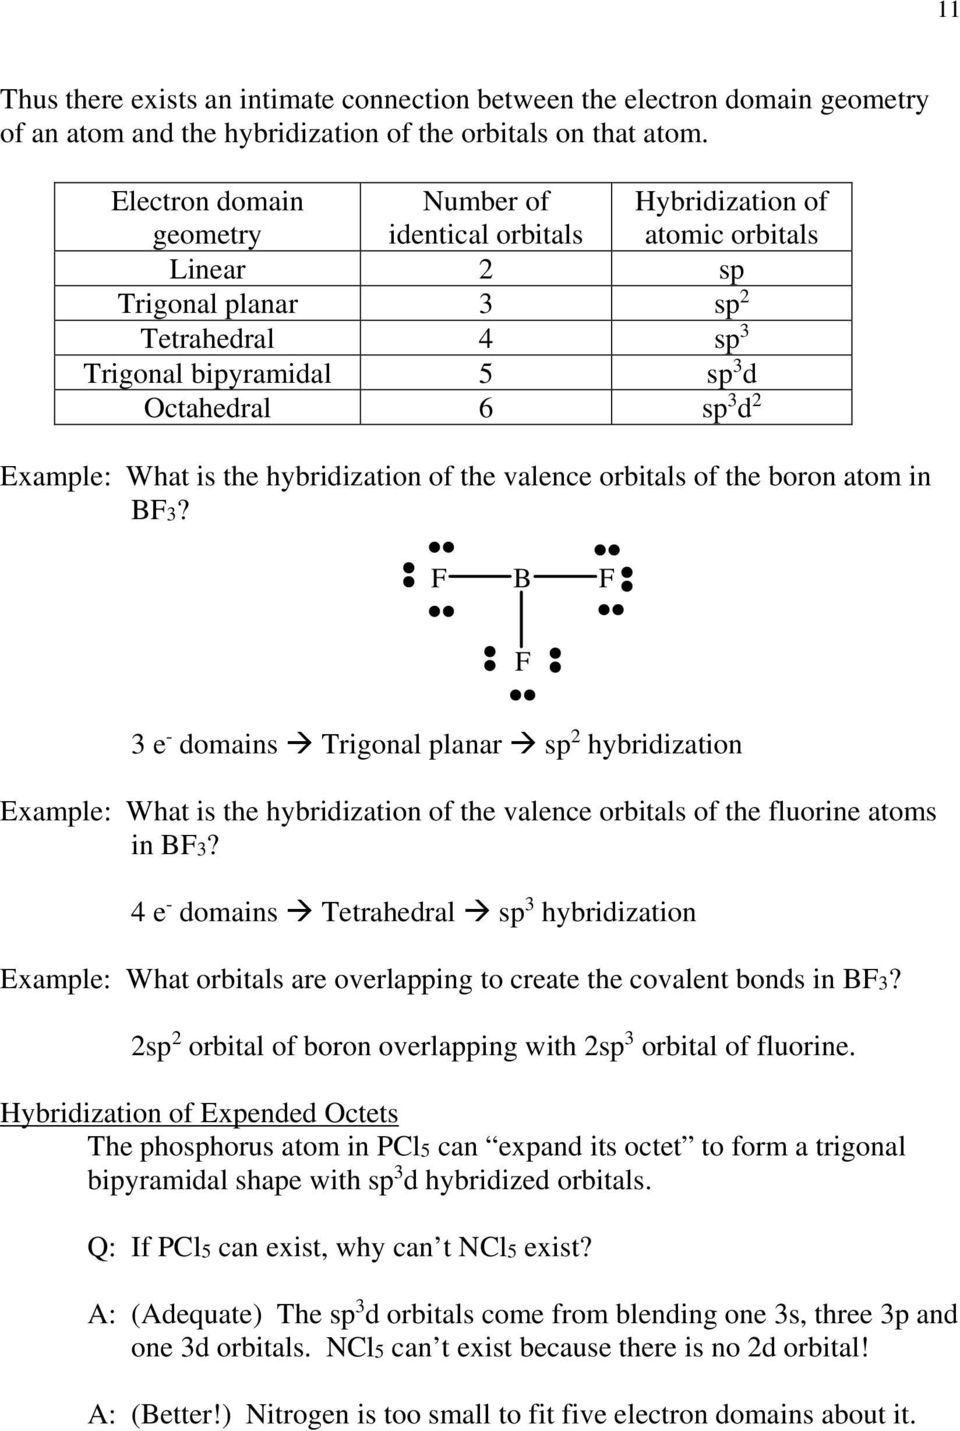 What is the hybridization of the valence orbitals of the boron atom in B3?